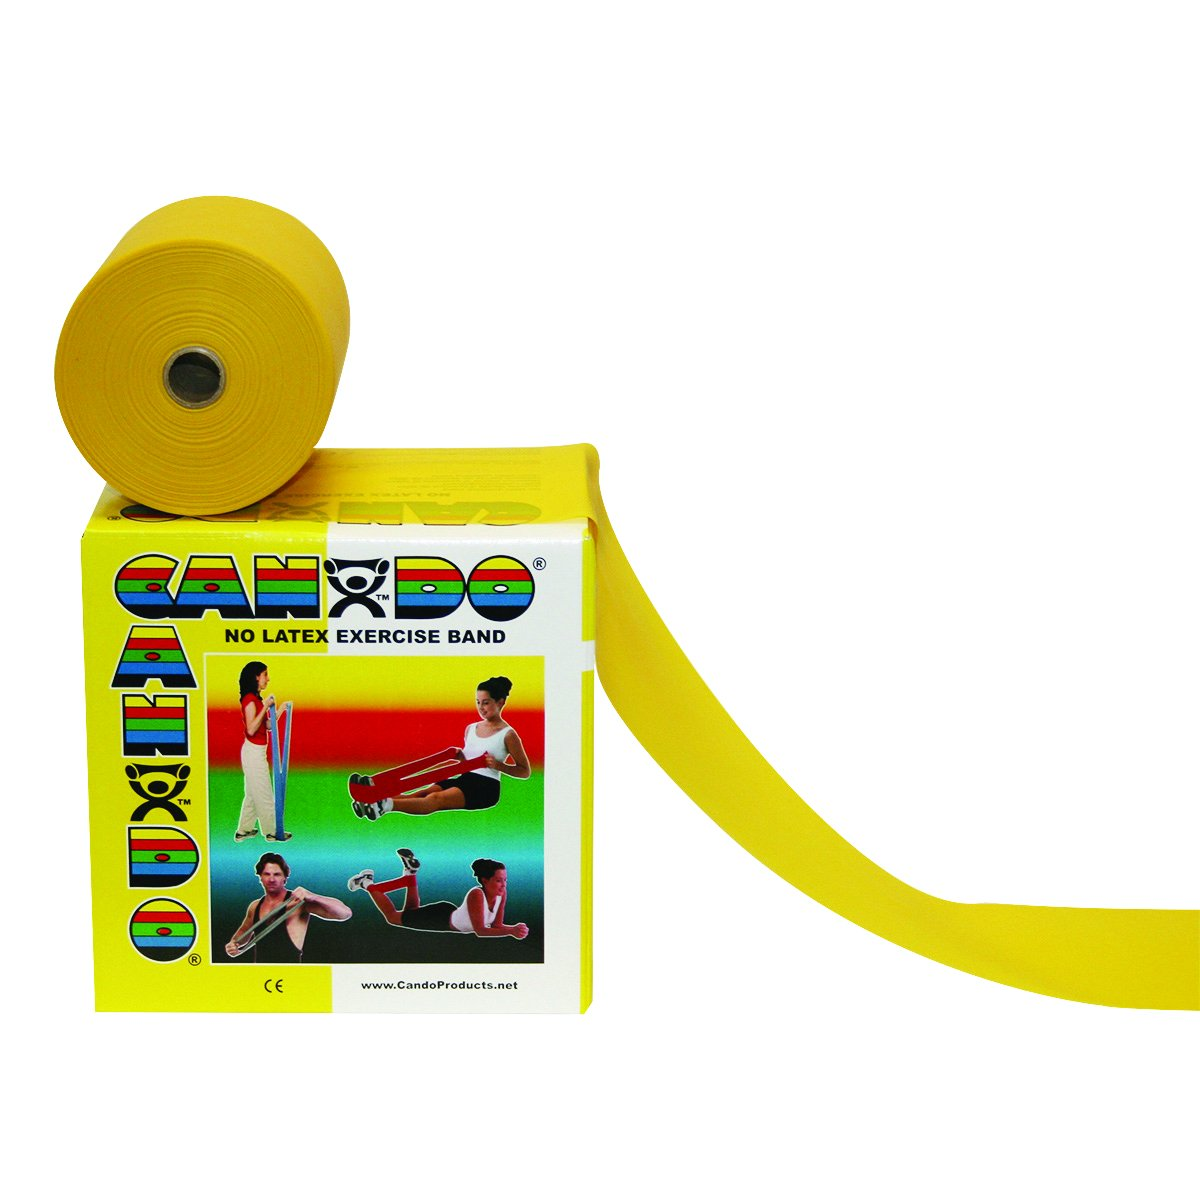 Cando 10-5621 Yellow Latex-Free Exercise Band, X-Light Resistance, 50 yd Length by Cando (Image #1)